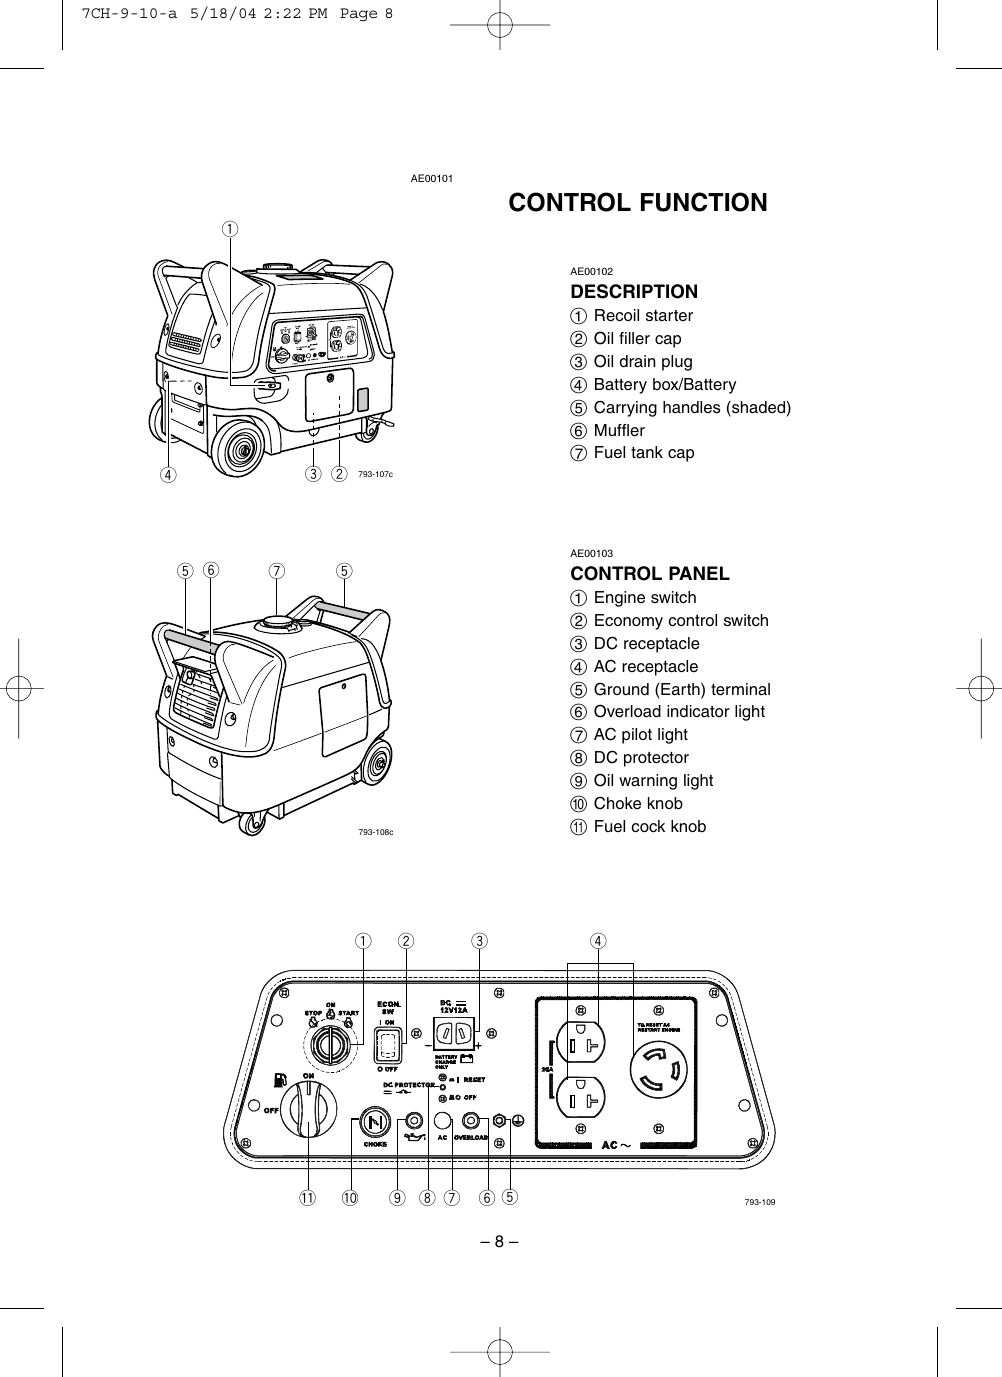 Wiring Diagram Needed System Check And Control Box Owners - Data